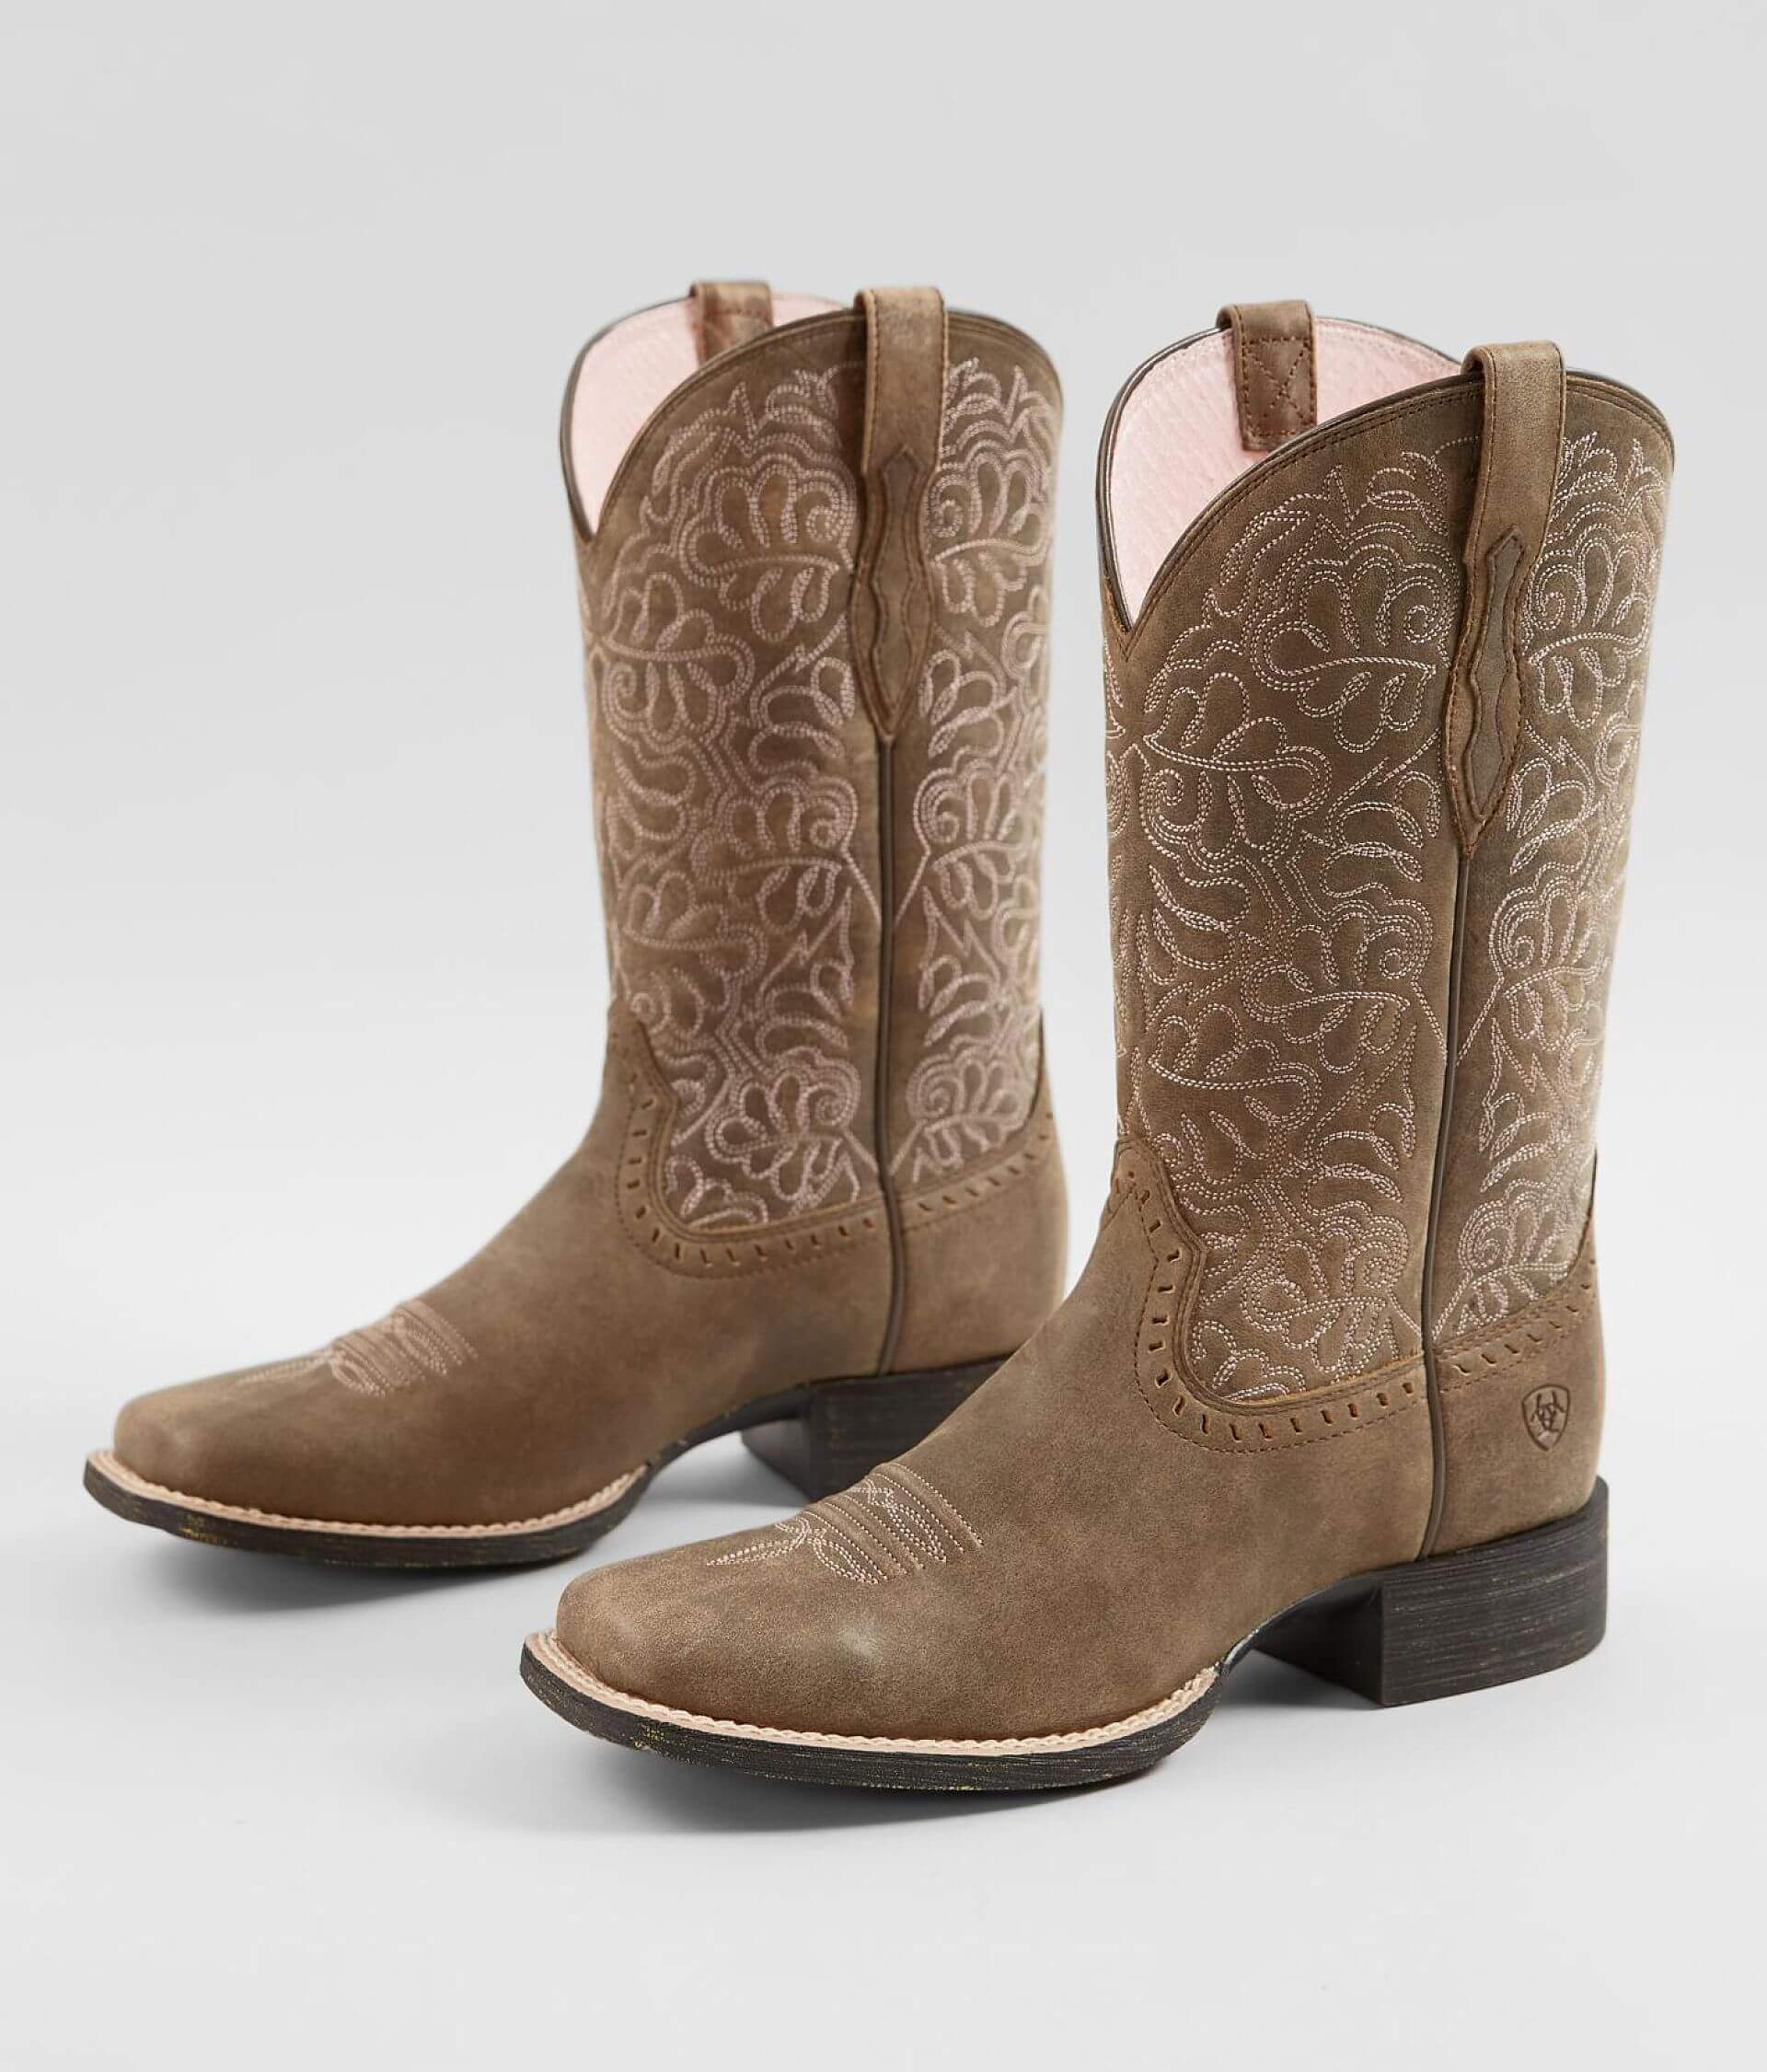 d8c1da2b49a Ariat Round Up Remuda Leather Western Boot - Women's Shoes in Brown ...